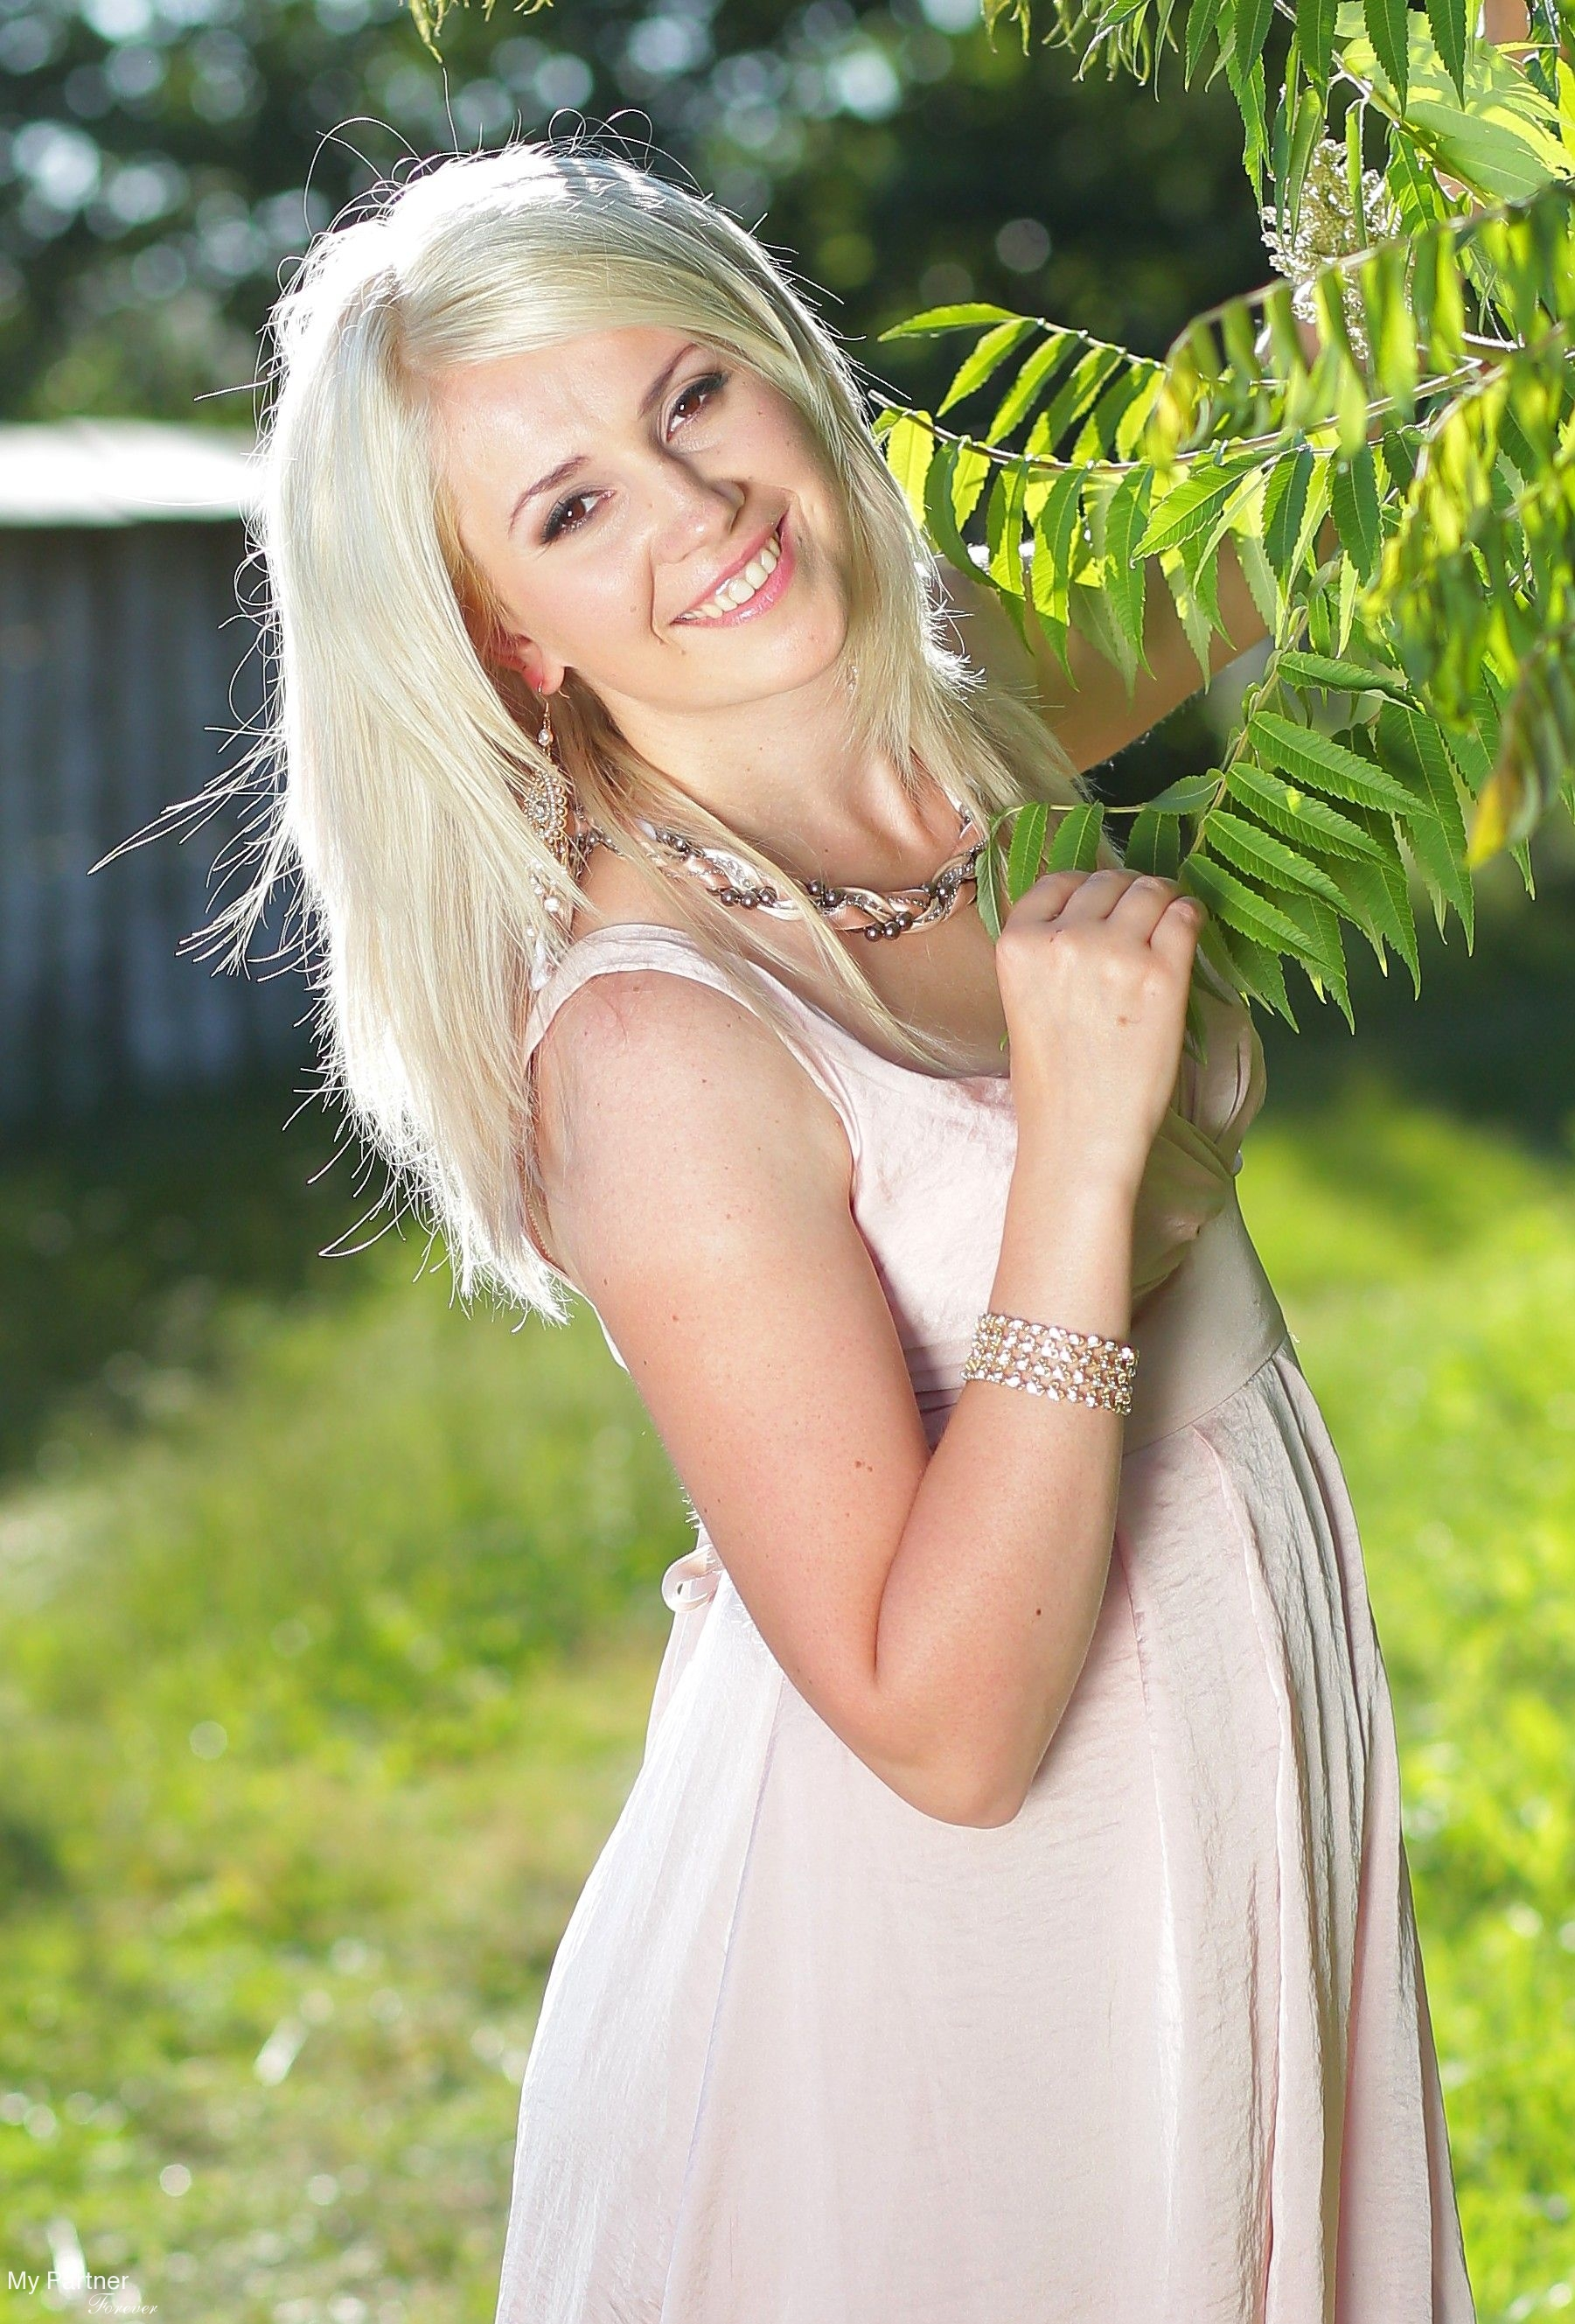 Datingsite to Meet Charming Belarusian Woman Elena from Grodno, Belarus.